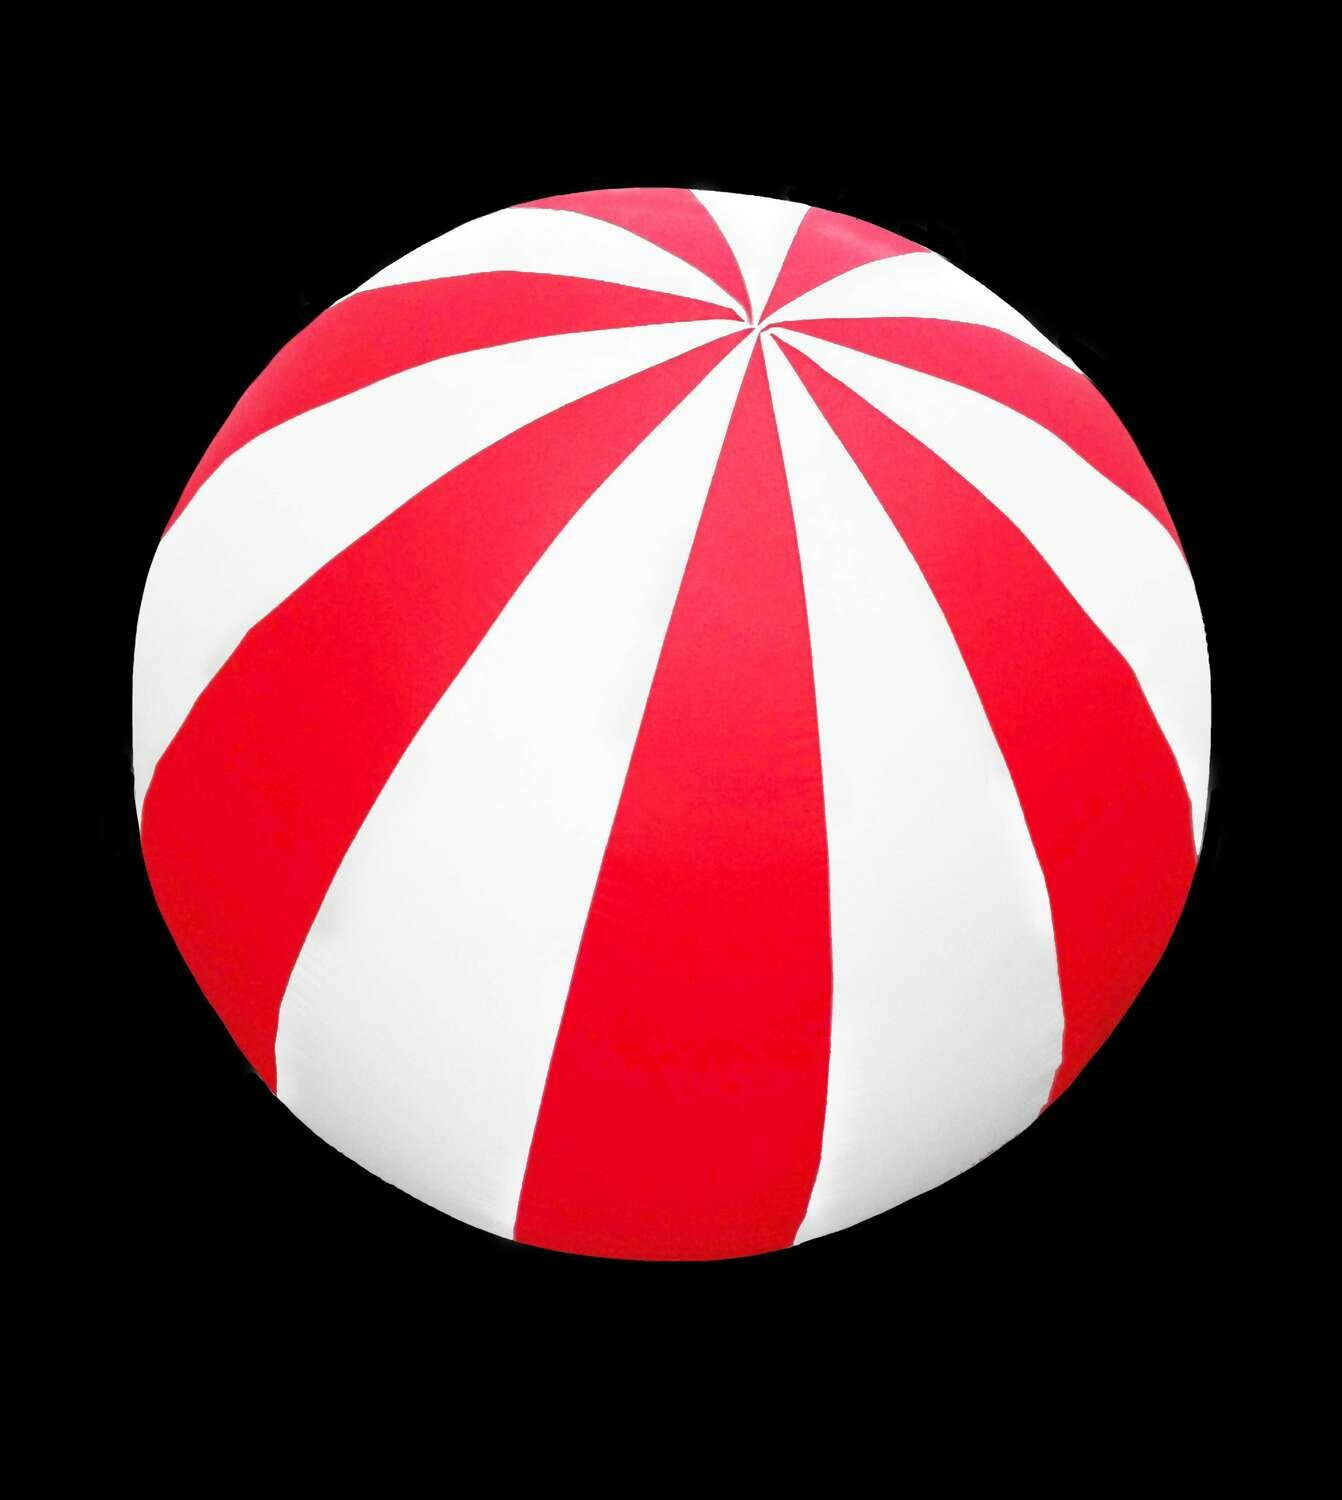 Hanging Inflatable Circus Ball Extra Stripy Spheres 3ft/91cm diameter